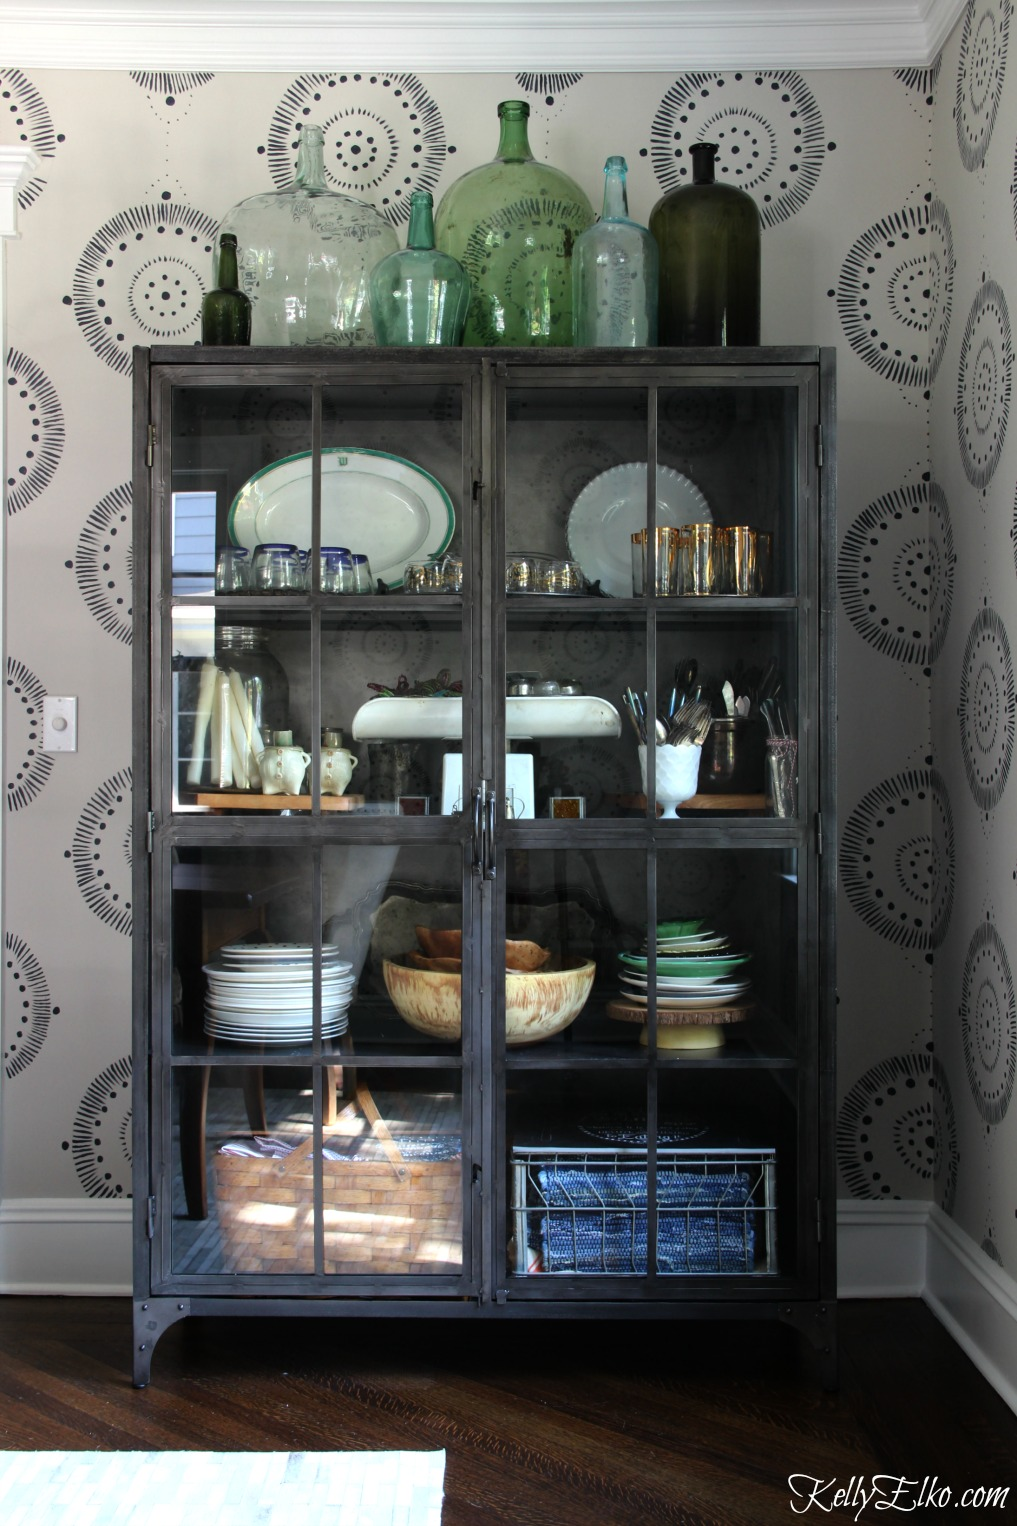 Forget wallpaper! This hand painted mural is like faux wallpaper minus the expense and I love the industrial metal cabinet and demijohn collection kellyelko.com #wallpaper #mural #diningroom #wallart #handpainted #collections #vintage